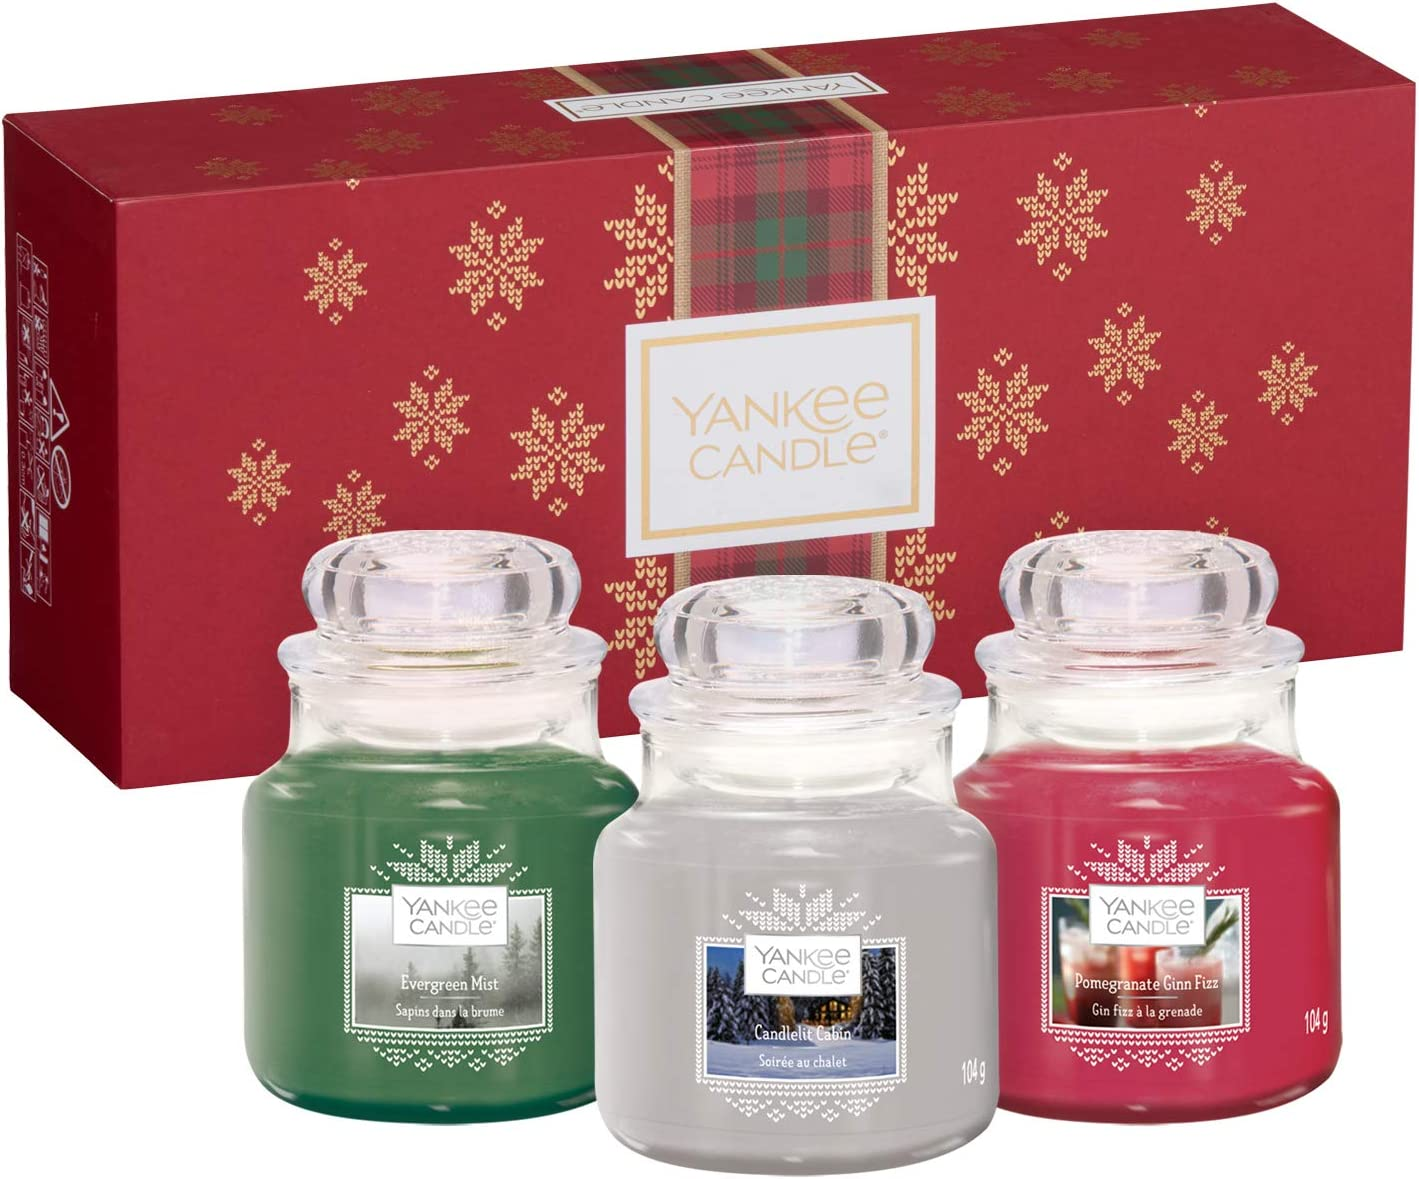 Yankee Candle Gift Set With 3 Small Jar Scented Candles Alpine Christmas Collection Festive Gift Box Amazon Co Uk Kitchen Home